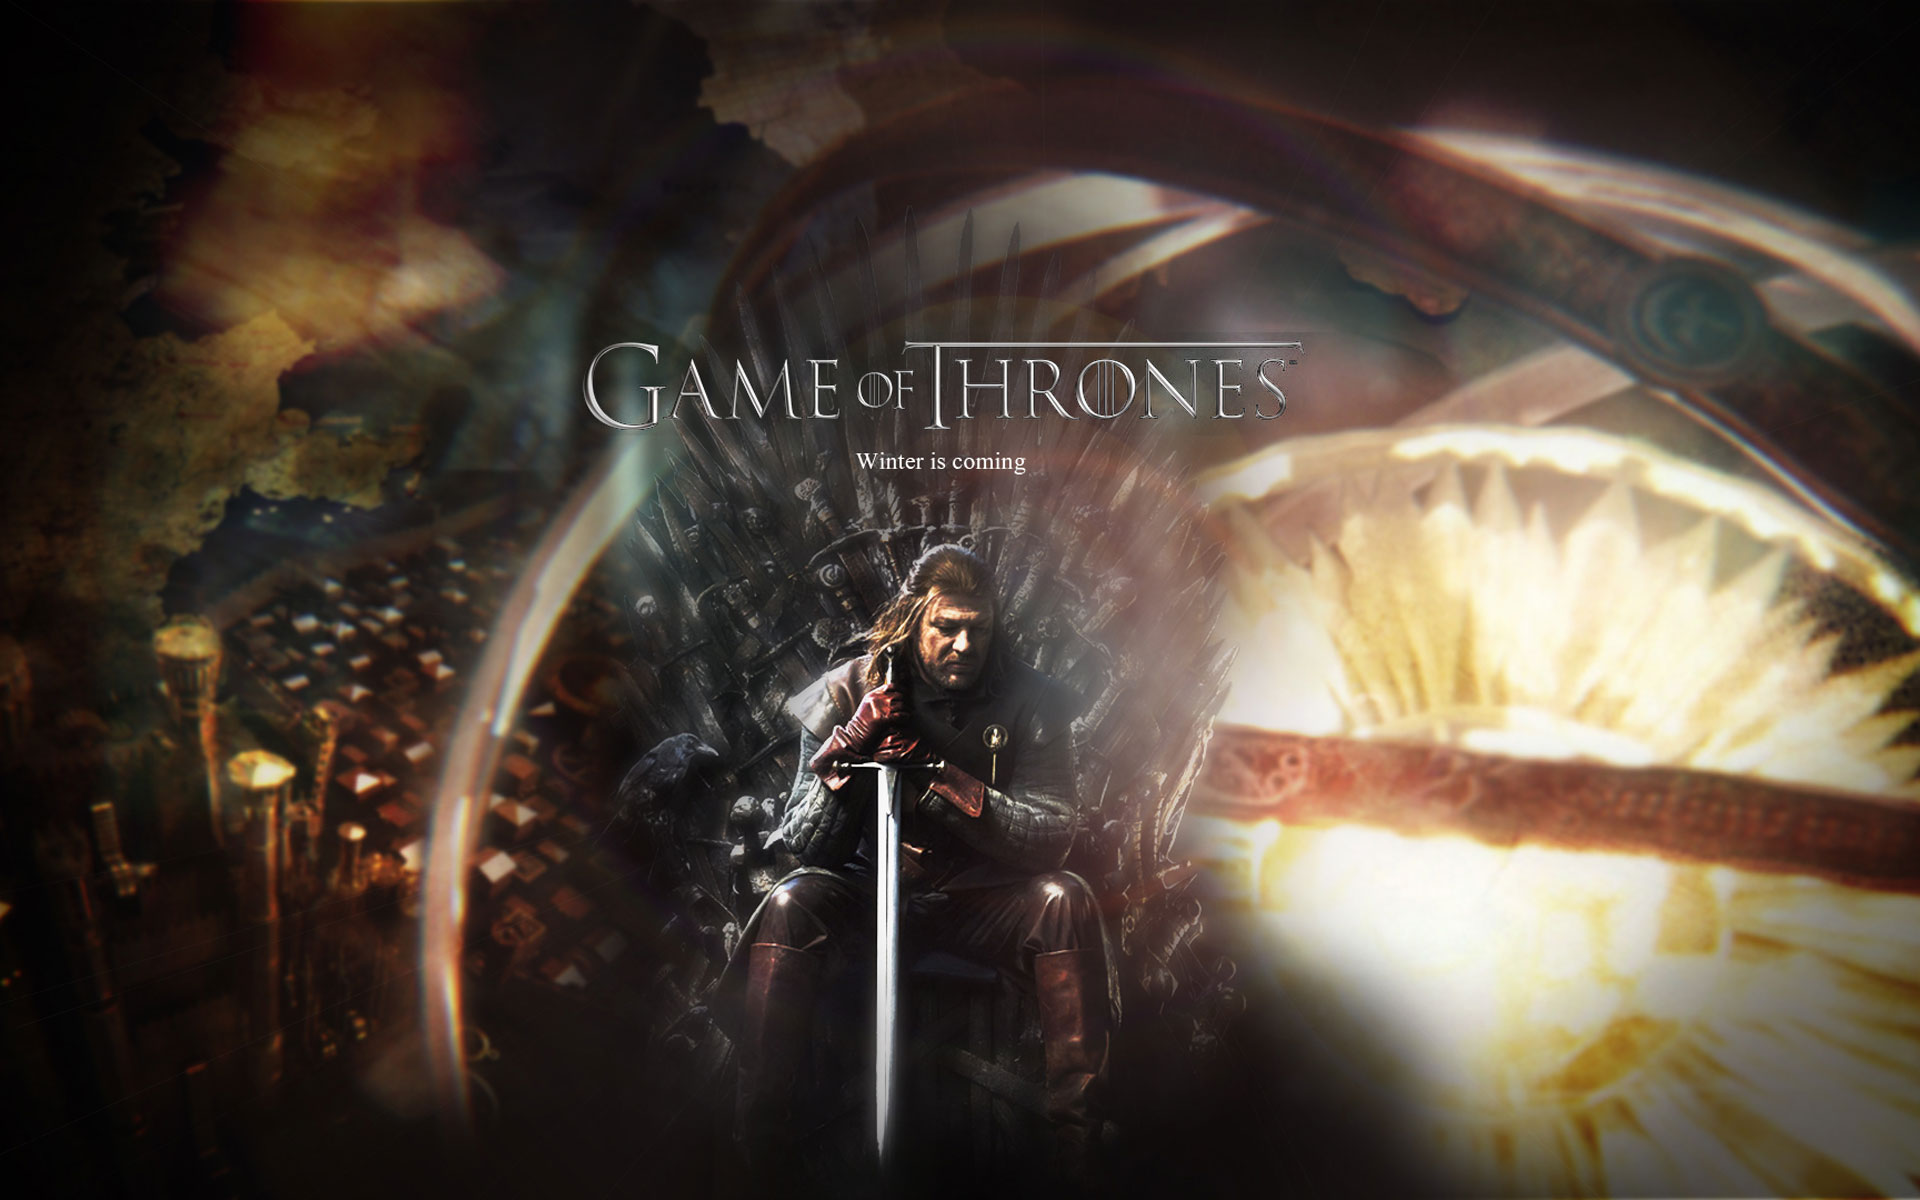 Game of Thrones game of thrones 23883790 1920 1200jpg 1920x1200